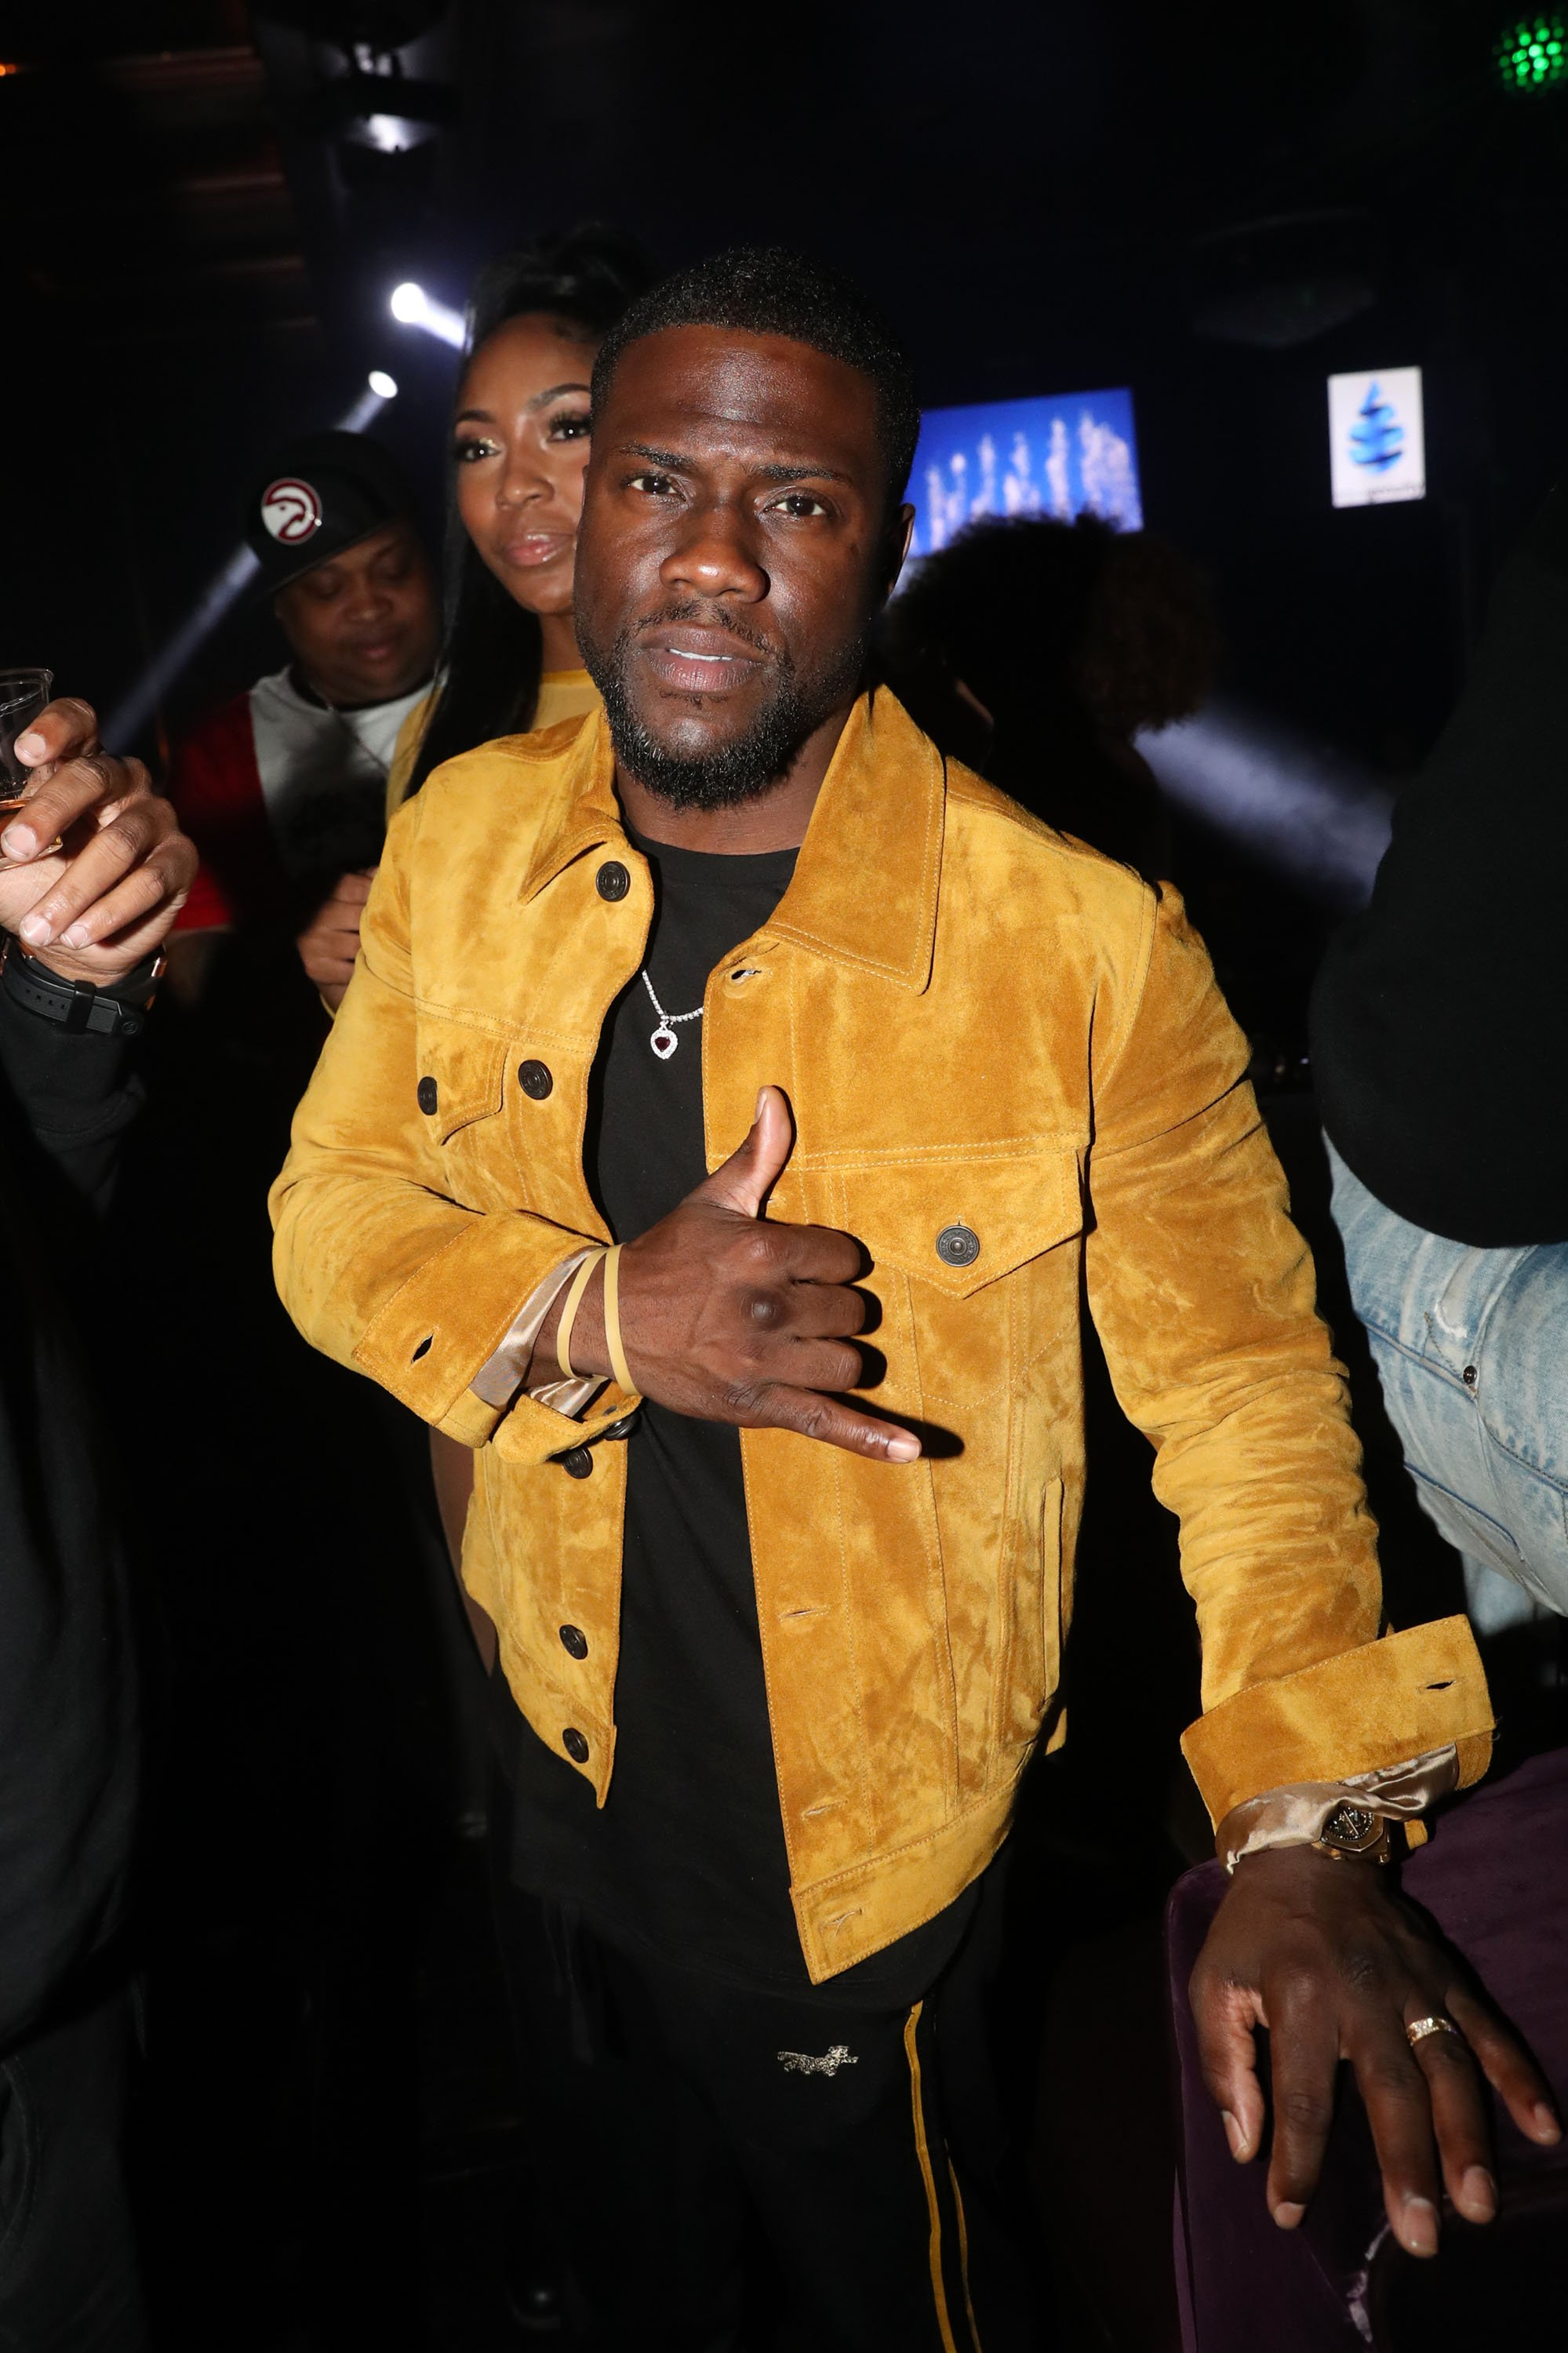 Kevin Hart co-hosts The Big Game Day Party on Feb. 2, 2019 in Atlanta, Georgia | Photo: Getty Images